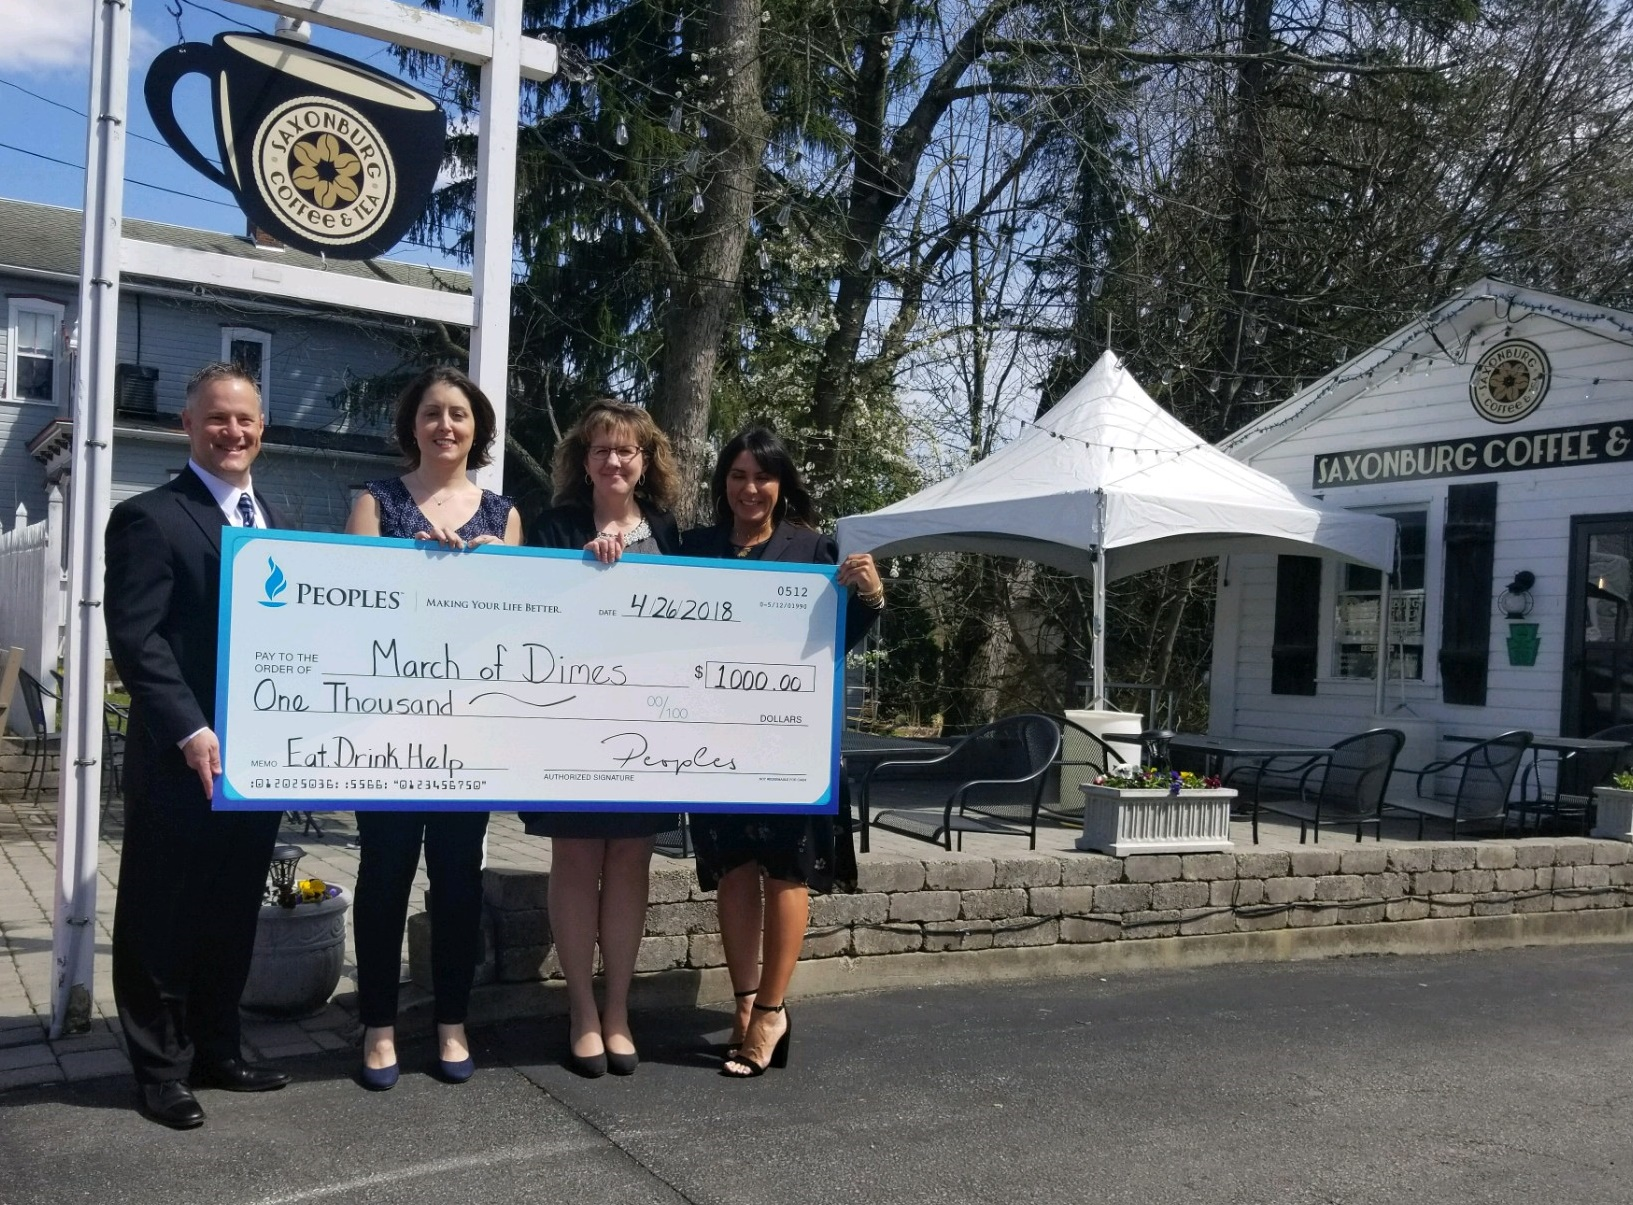 PEOPLES Partners With Small Business To Help Local Non-Profit